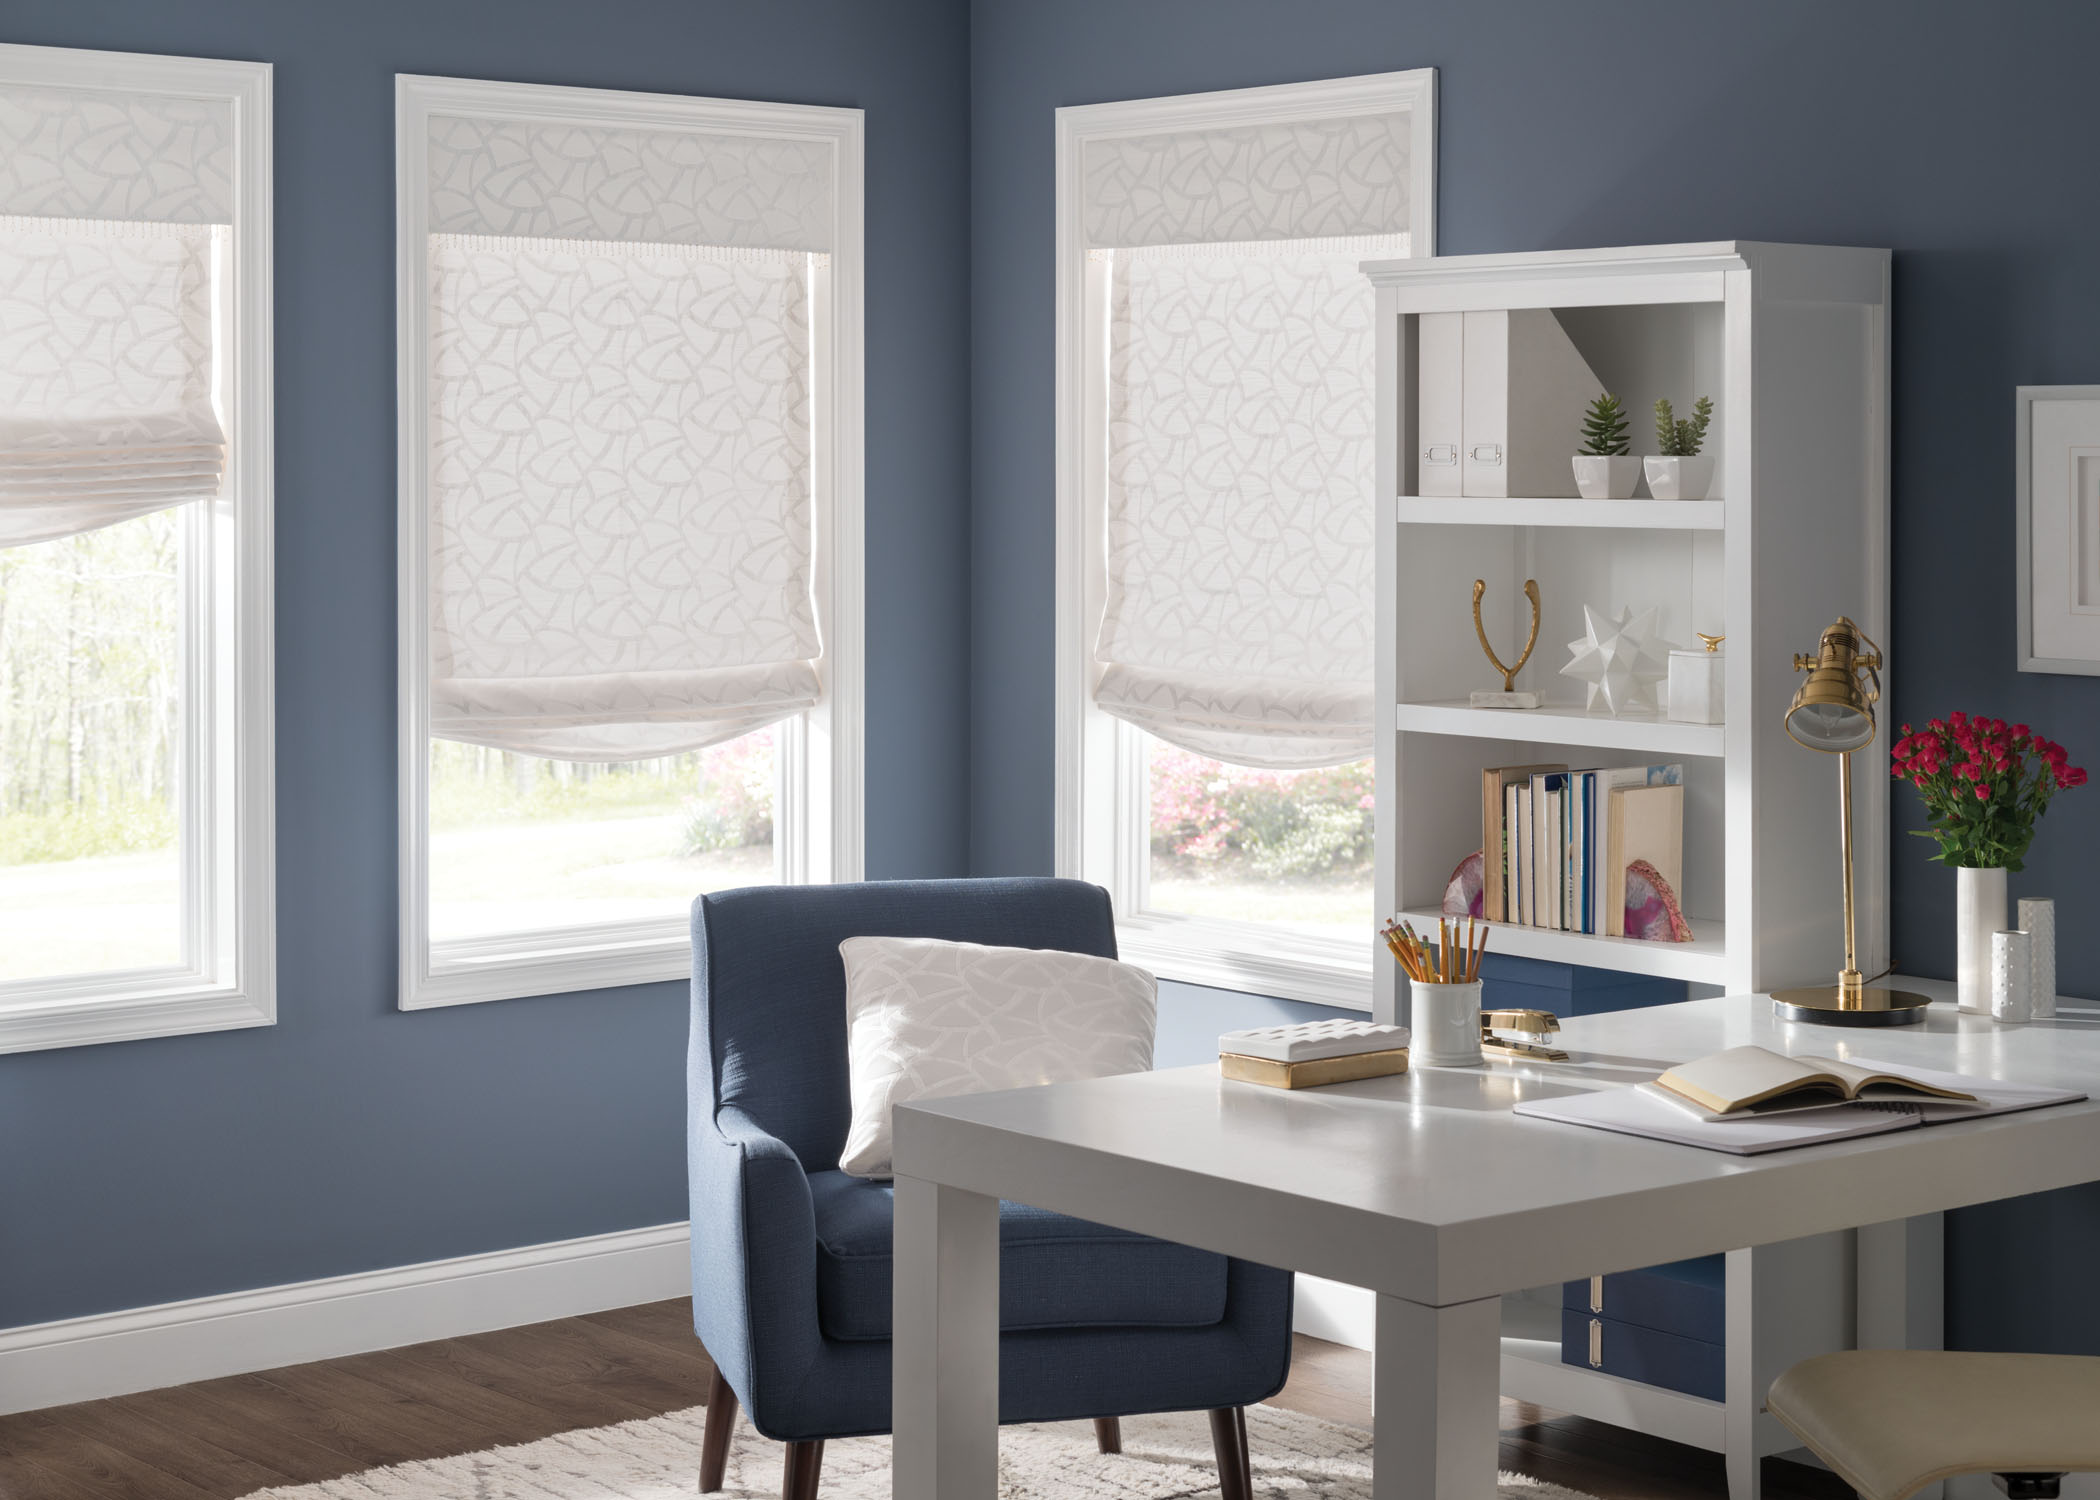 graber-fabricshades-office1-light-airy.jpg